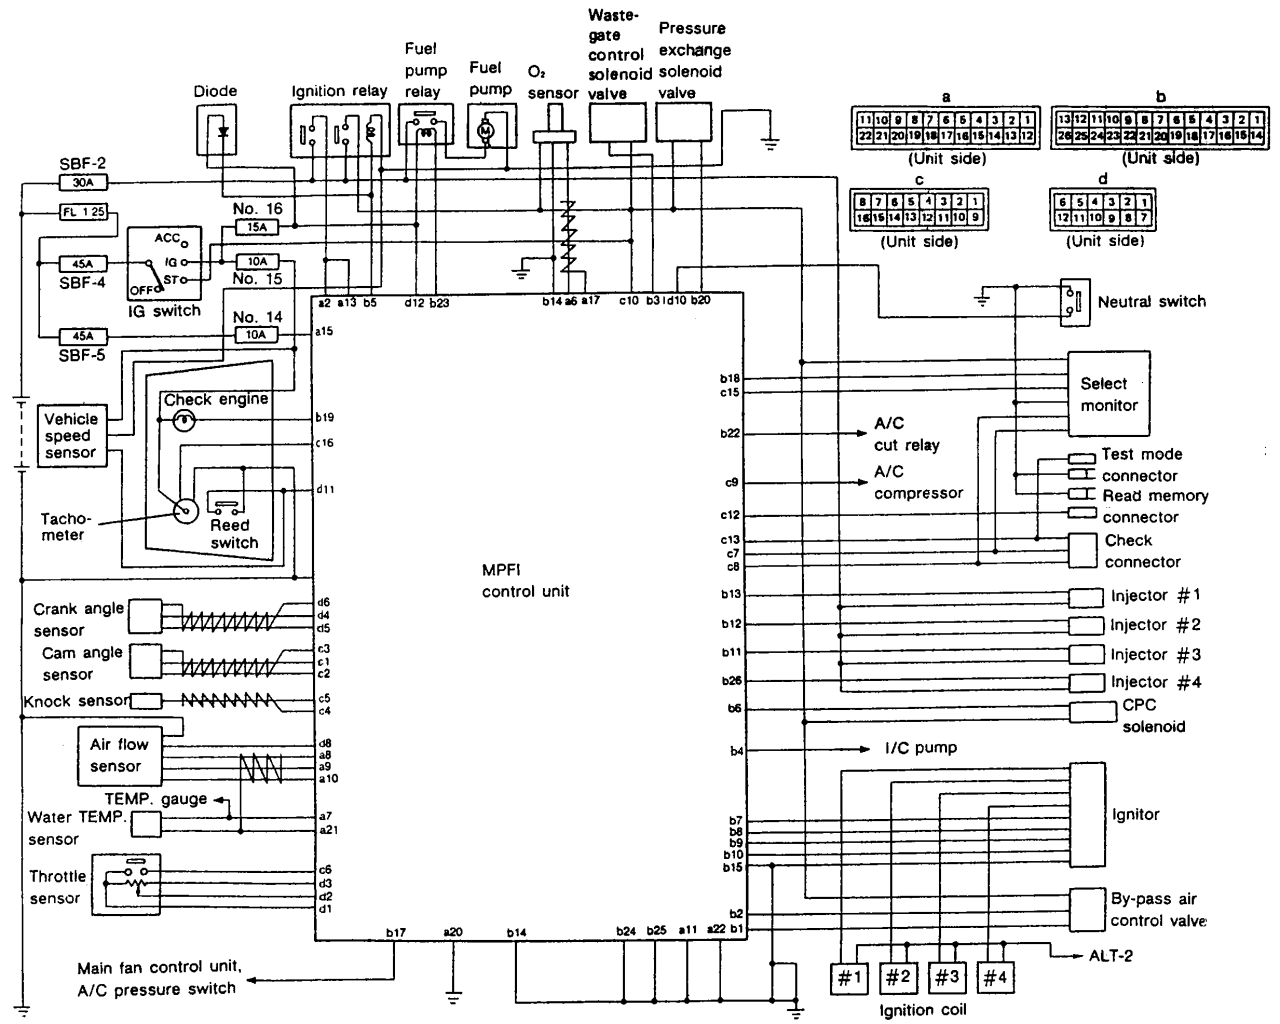 1999 subaru legacy wiring diagram l diagram base website diagram l ...  diagram base website full edition - veronaland